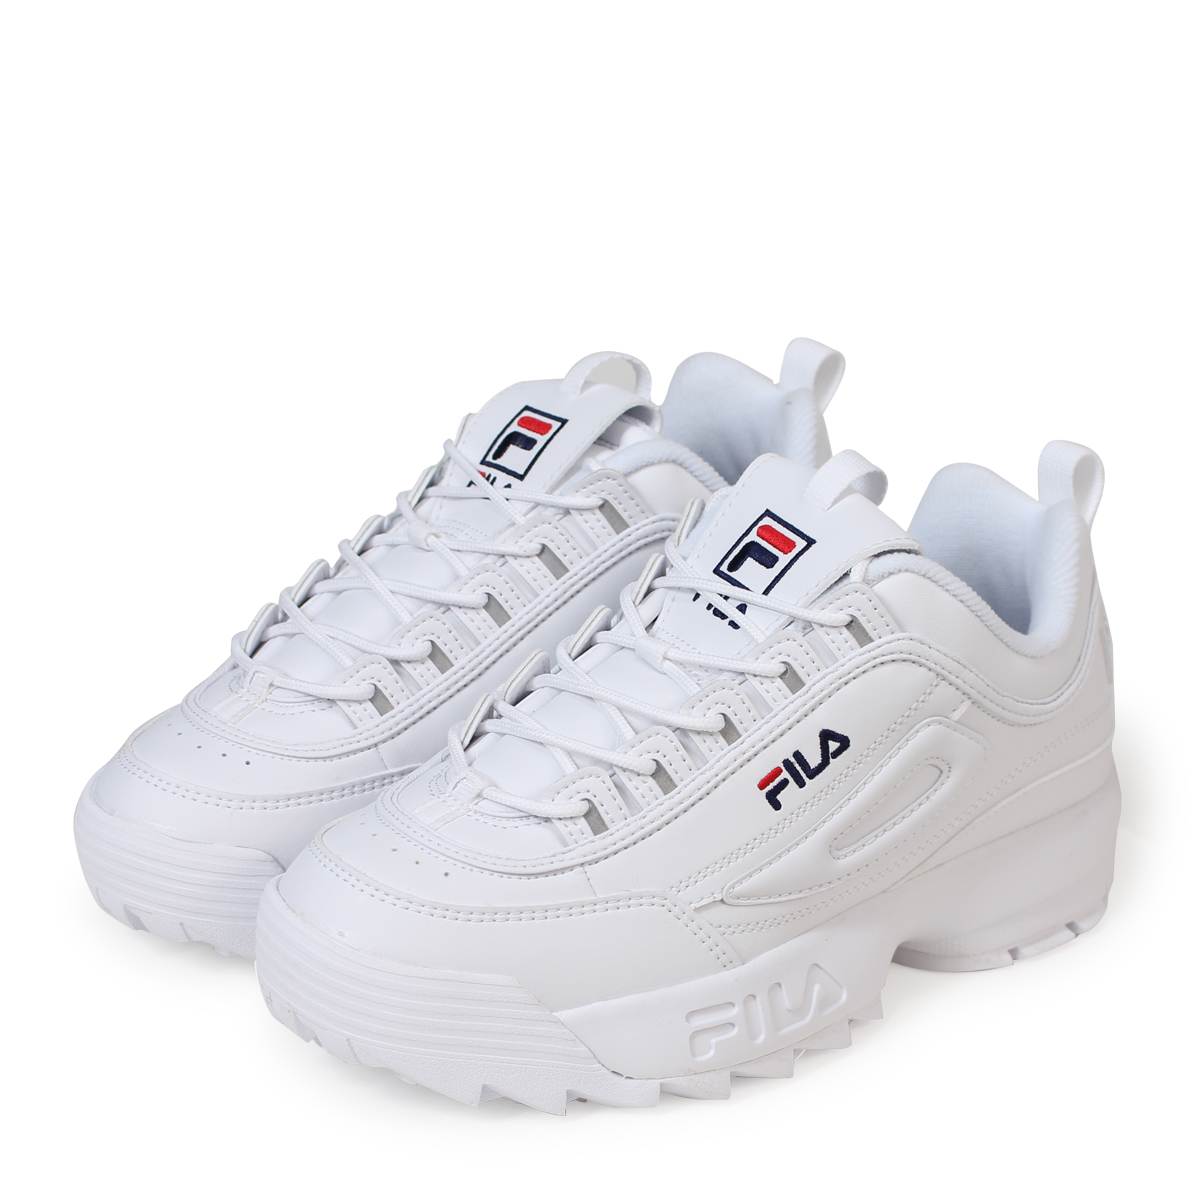 top-rated fashion promotion hot sales FILA DISRUPTOR 2 フィラディスラプター 2 sneakers men gap Dis white FS1HTA1071X [191]